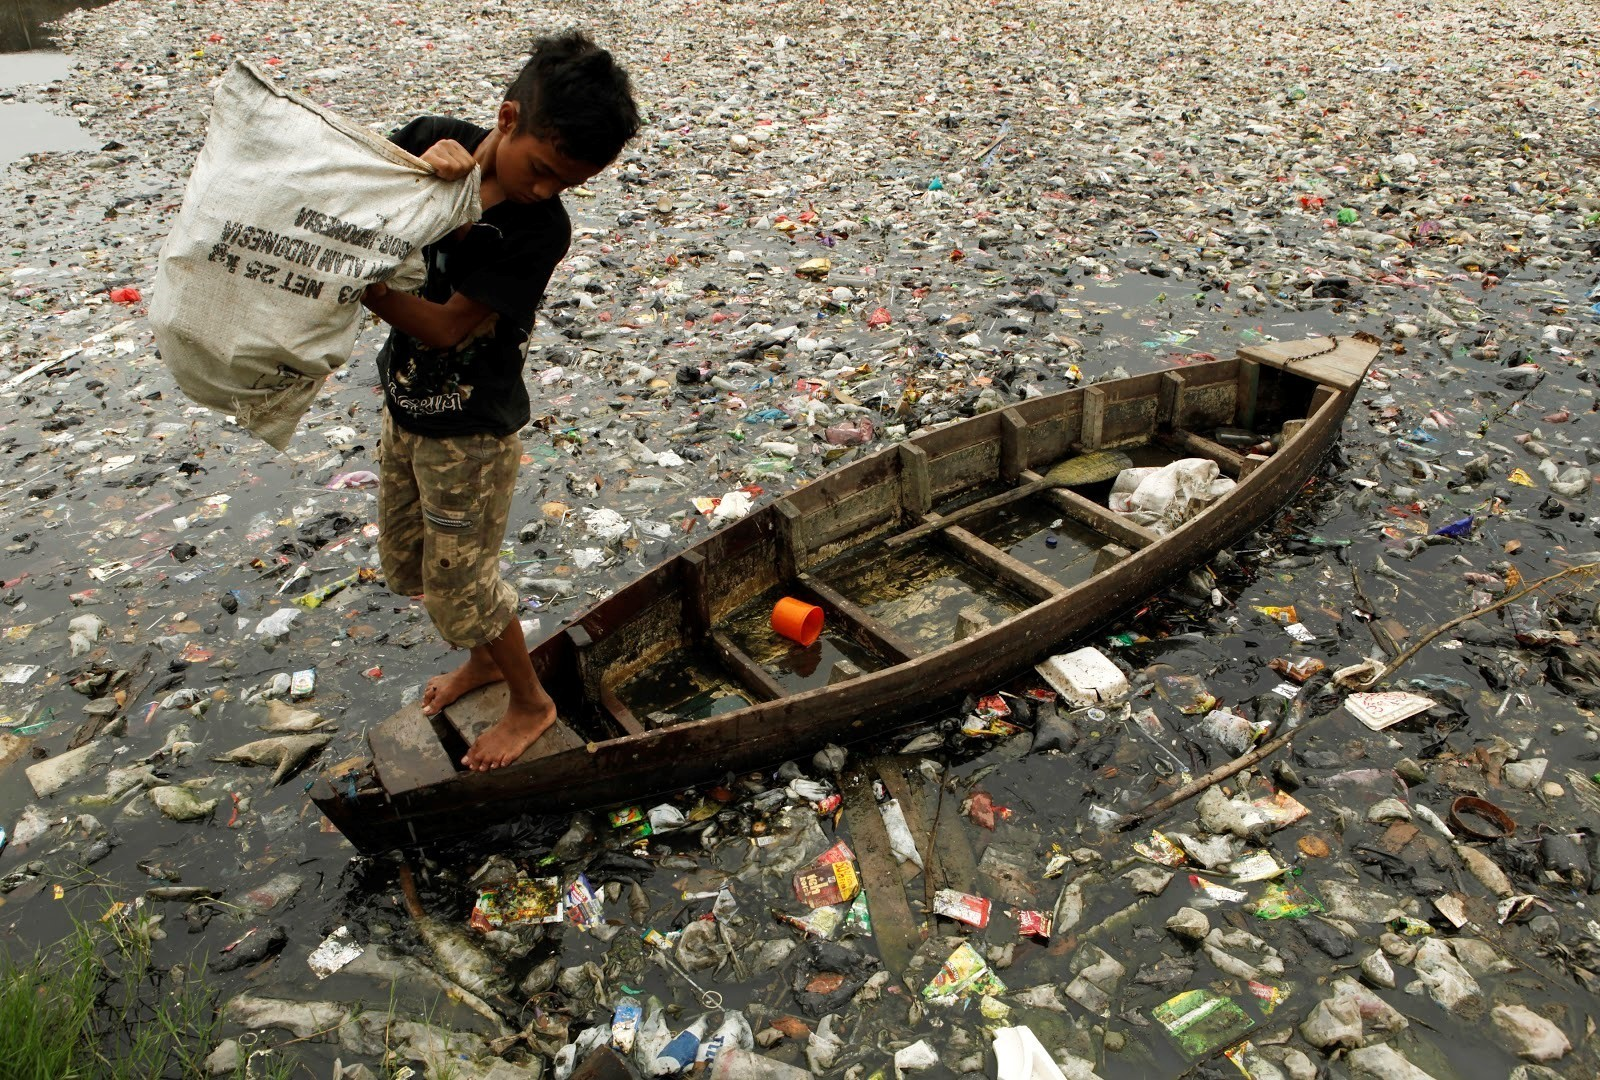 Every 20 minutes, the equivalent of a 10-tonne truckload of plastic is dumped into the sea in Indonesia.